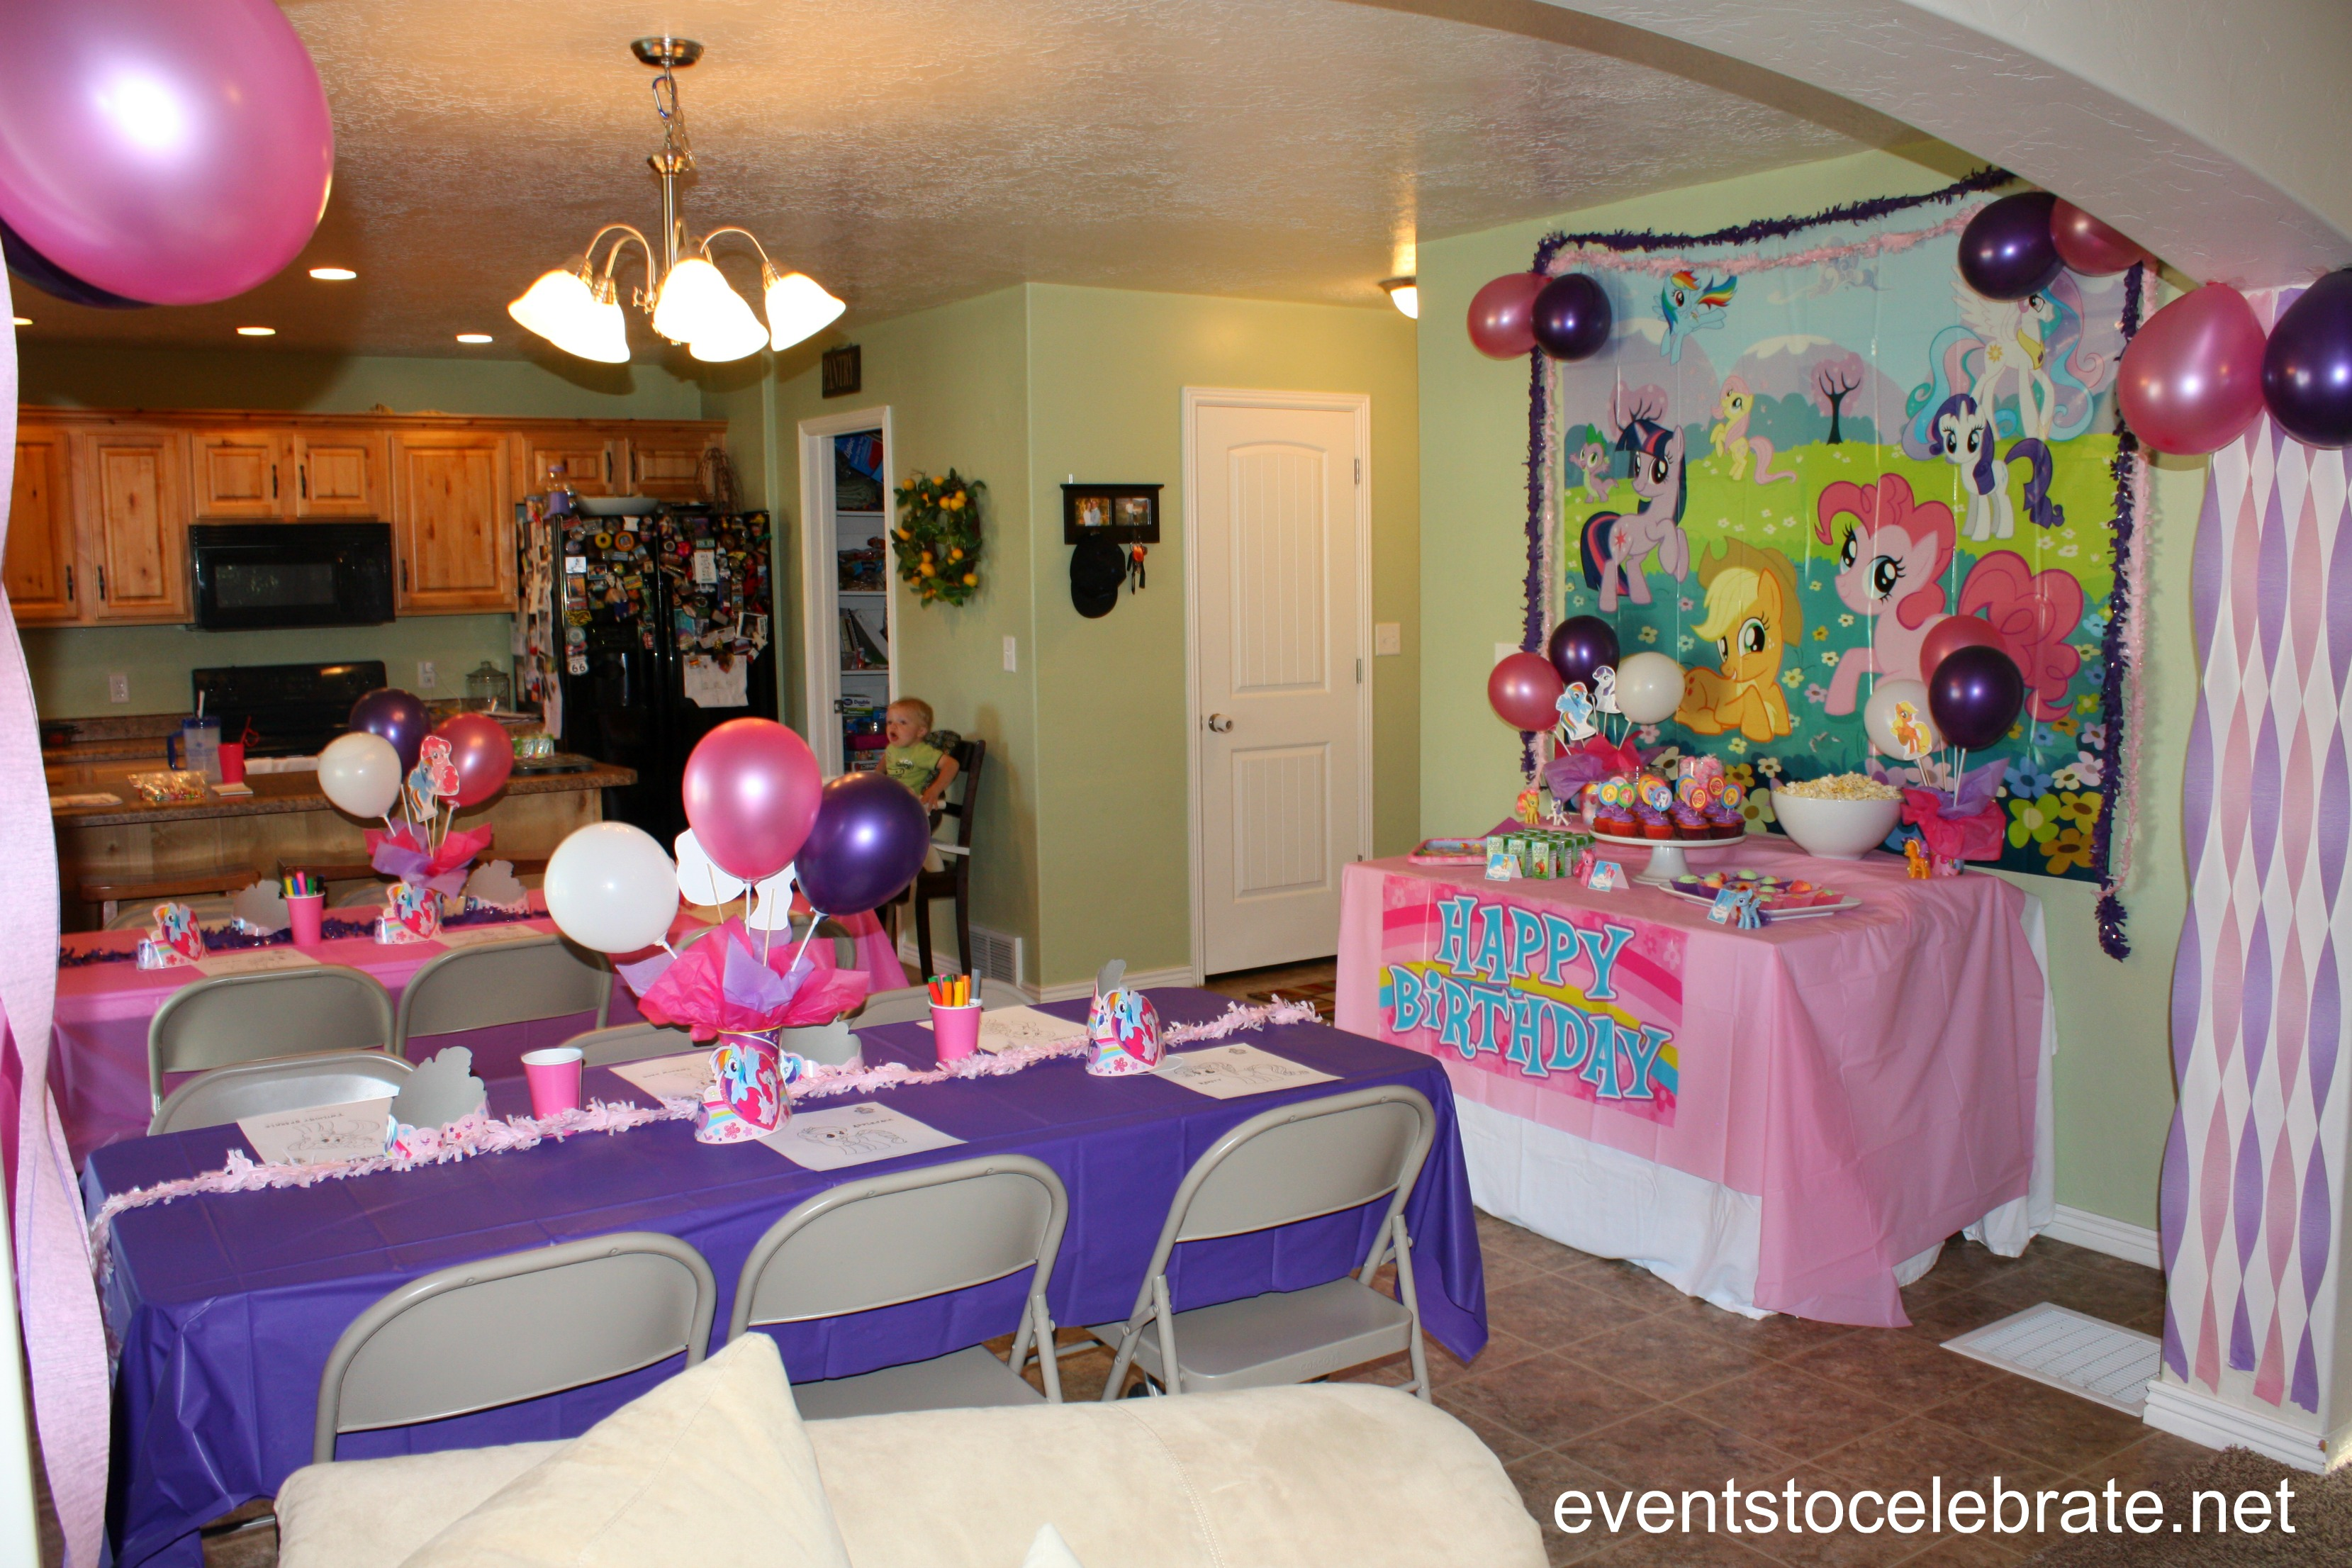 MY LITTLE PONY DECORATIONS My Little Pony Party. My Little Pony Party Ideas   events to CELEBRATE